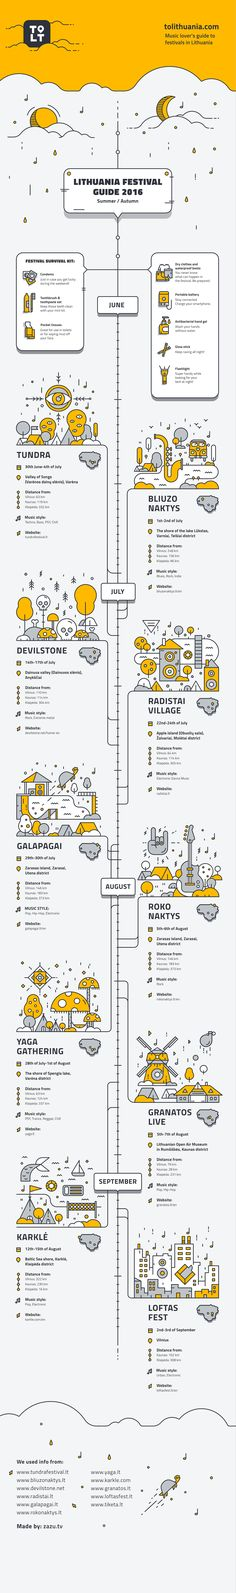 Lithuania Festival Guide on Behance